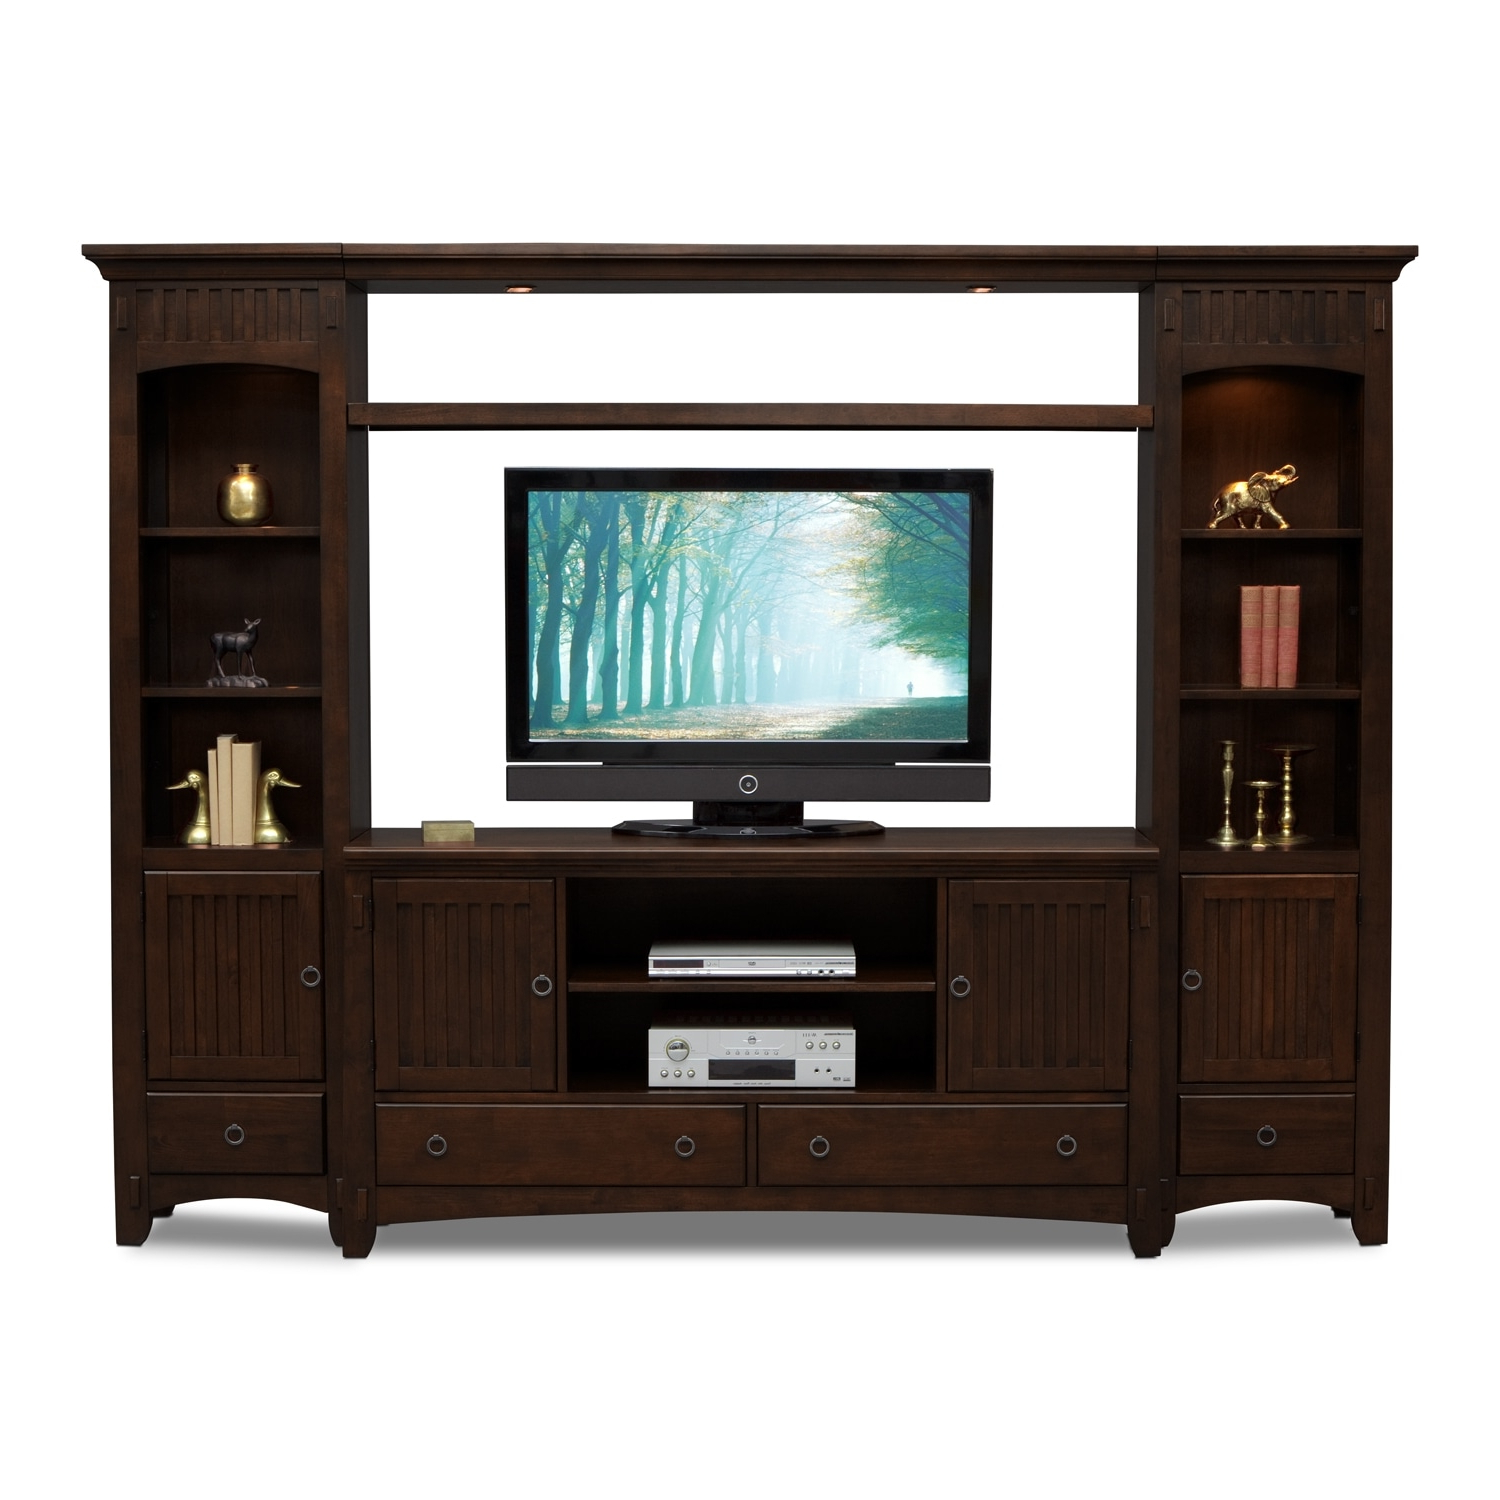 Value City Pertaining To Oak Tv Stands With Glass Doors (View 18 of 20)